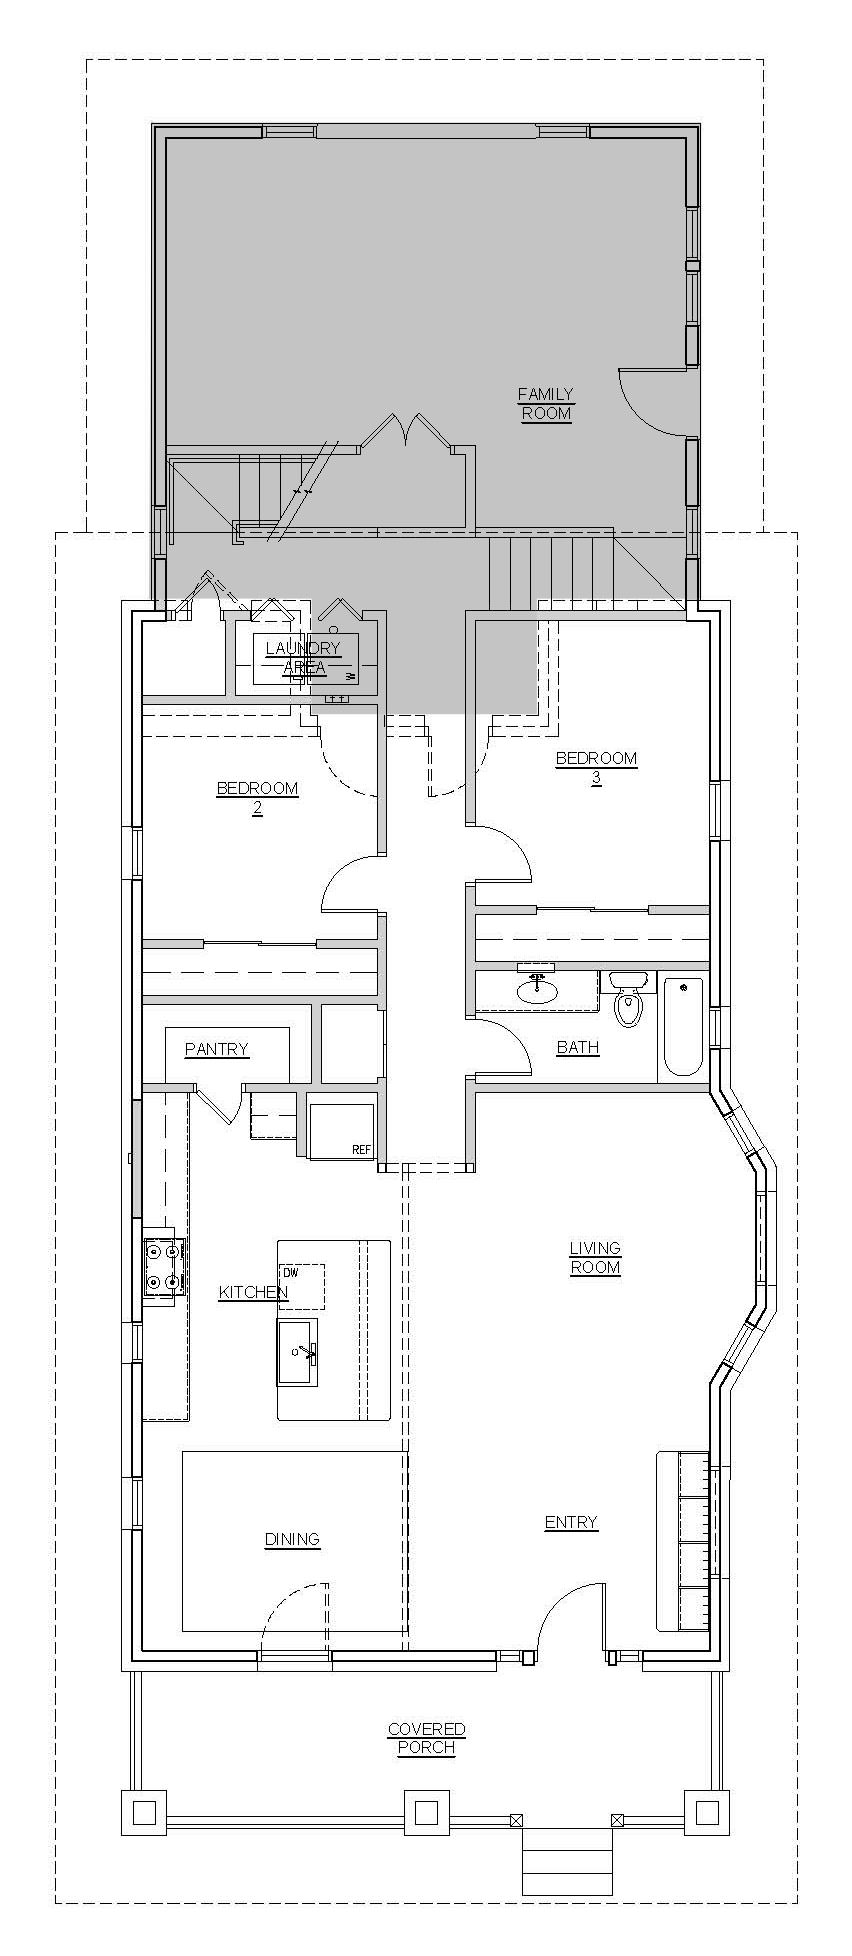 Main Level Floor Plan & Lower Level (addition in gray)